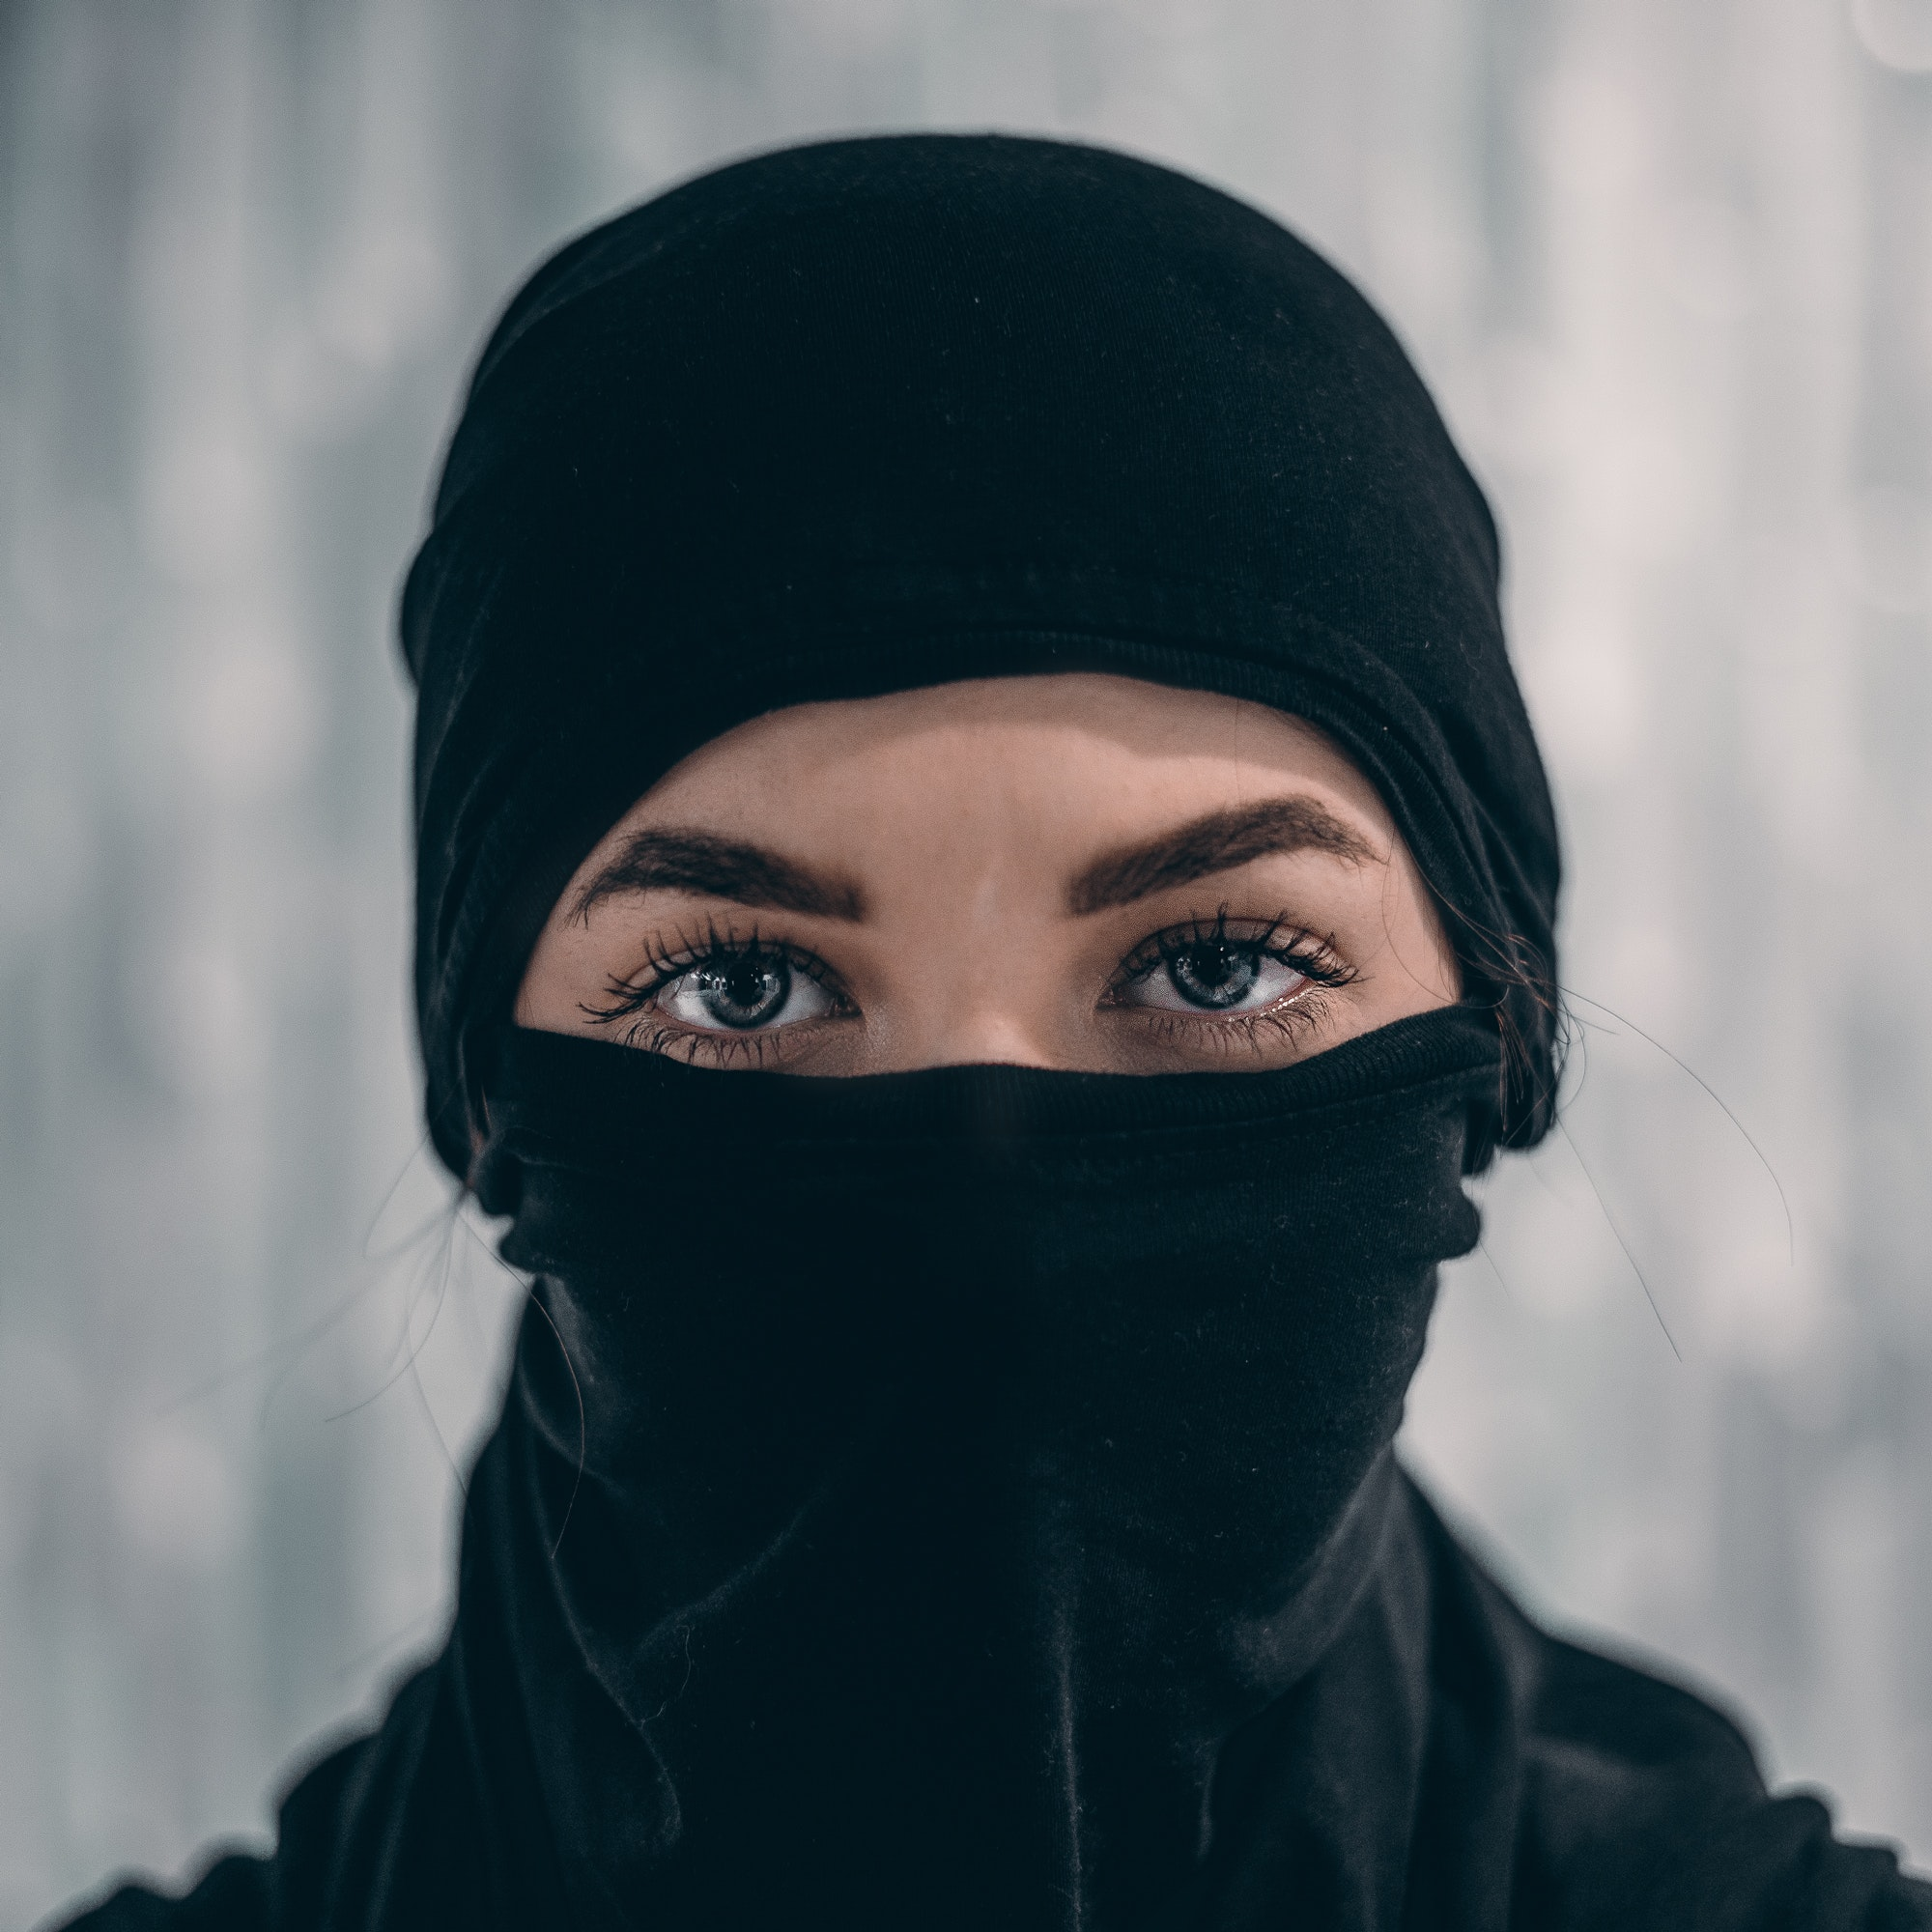 Girl wearing a full face mask with just her eyes showing